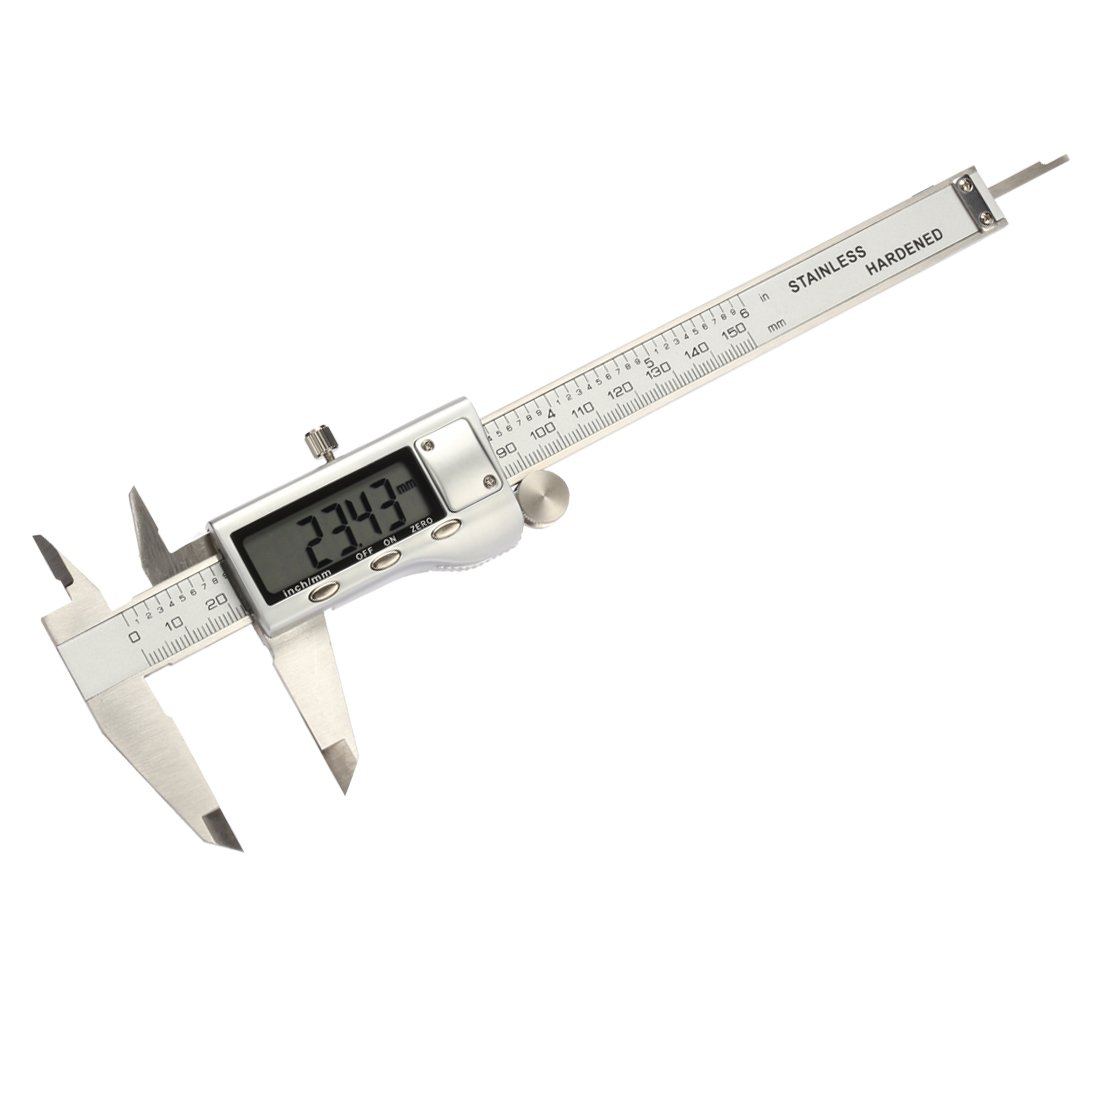 Incutex vernier caliper analogue with locking screw precision caliper micrometer measuring tool 0-150mm stainless 0.05 mm 1-128inch